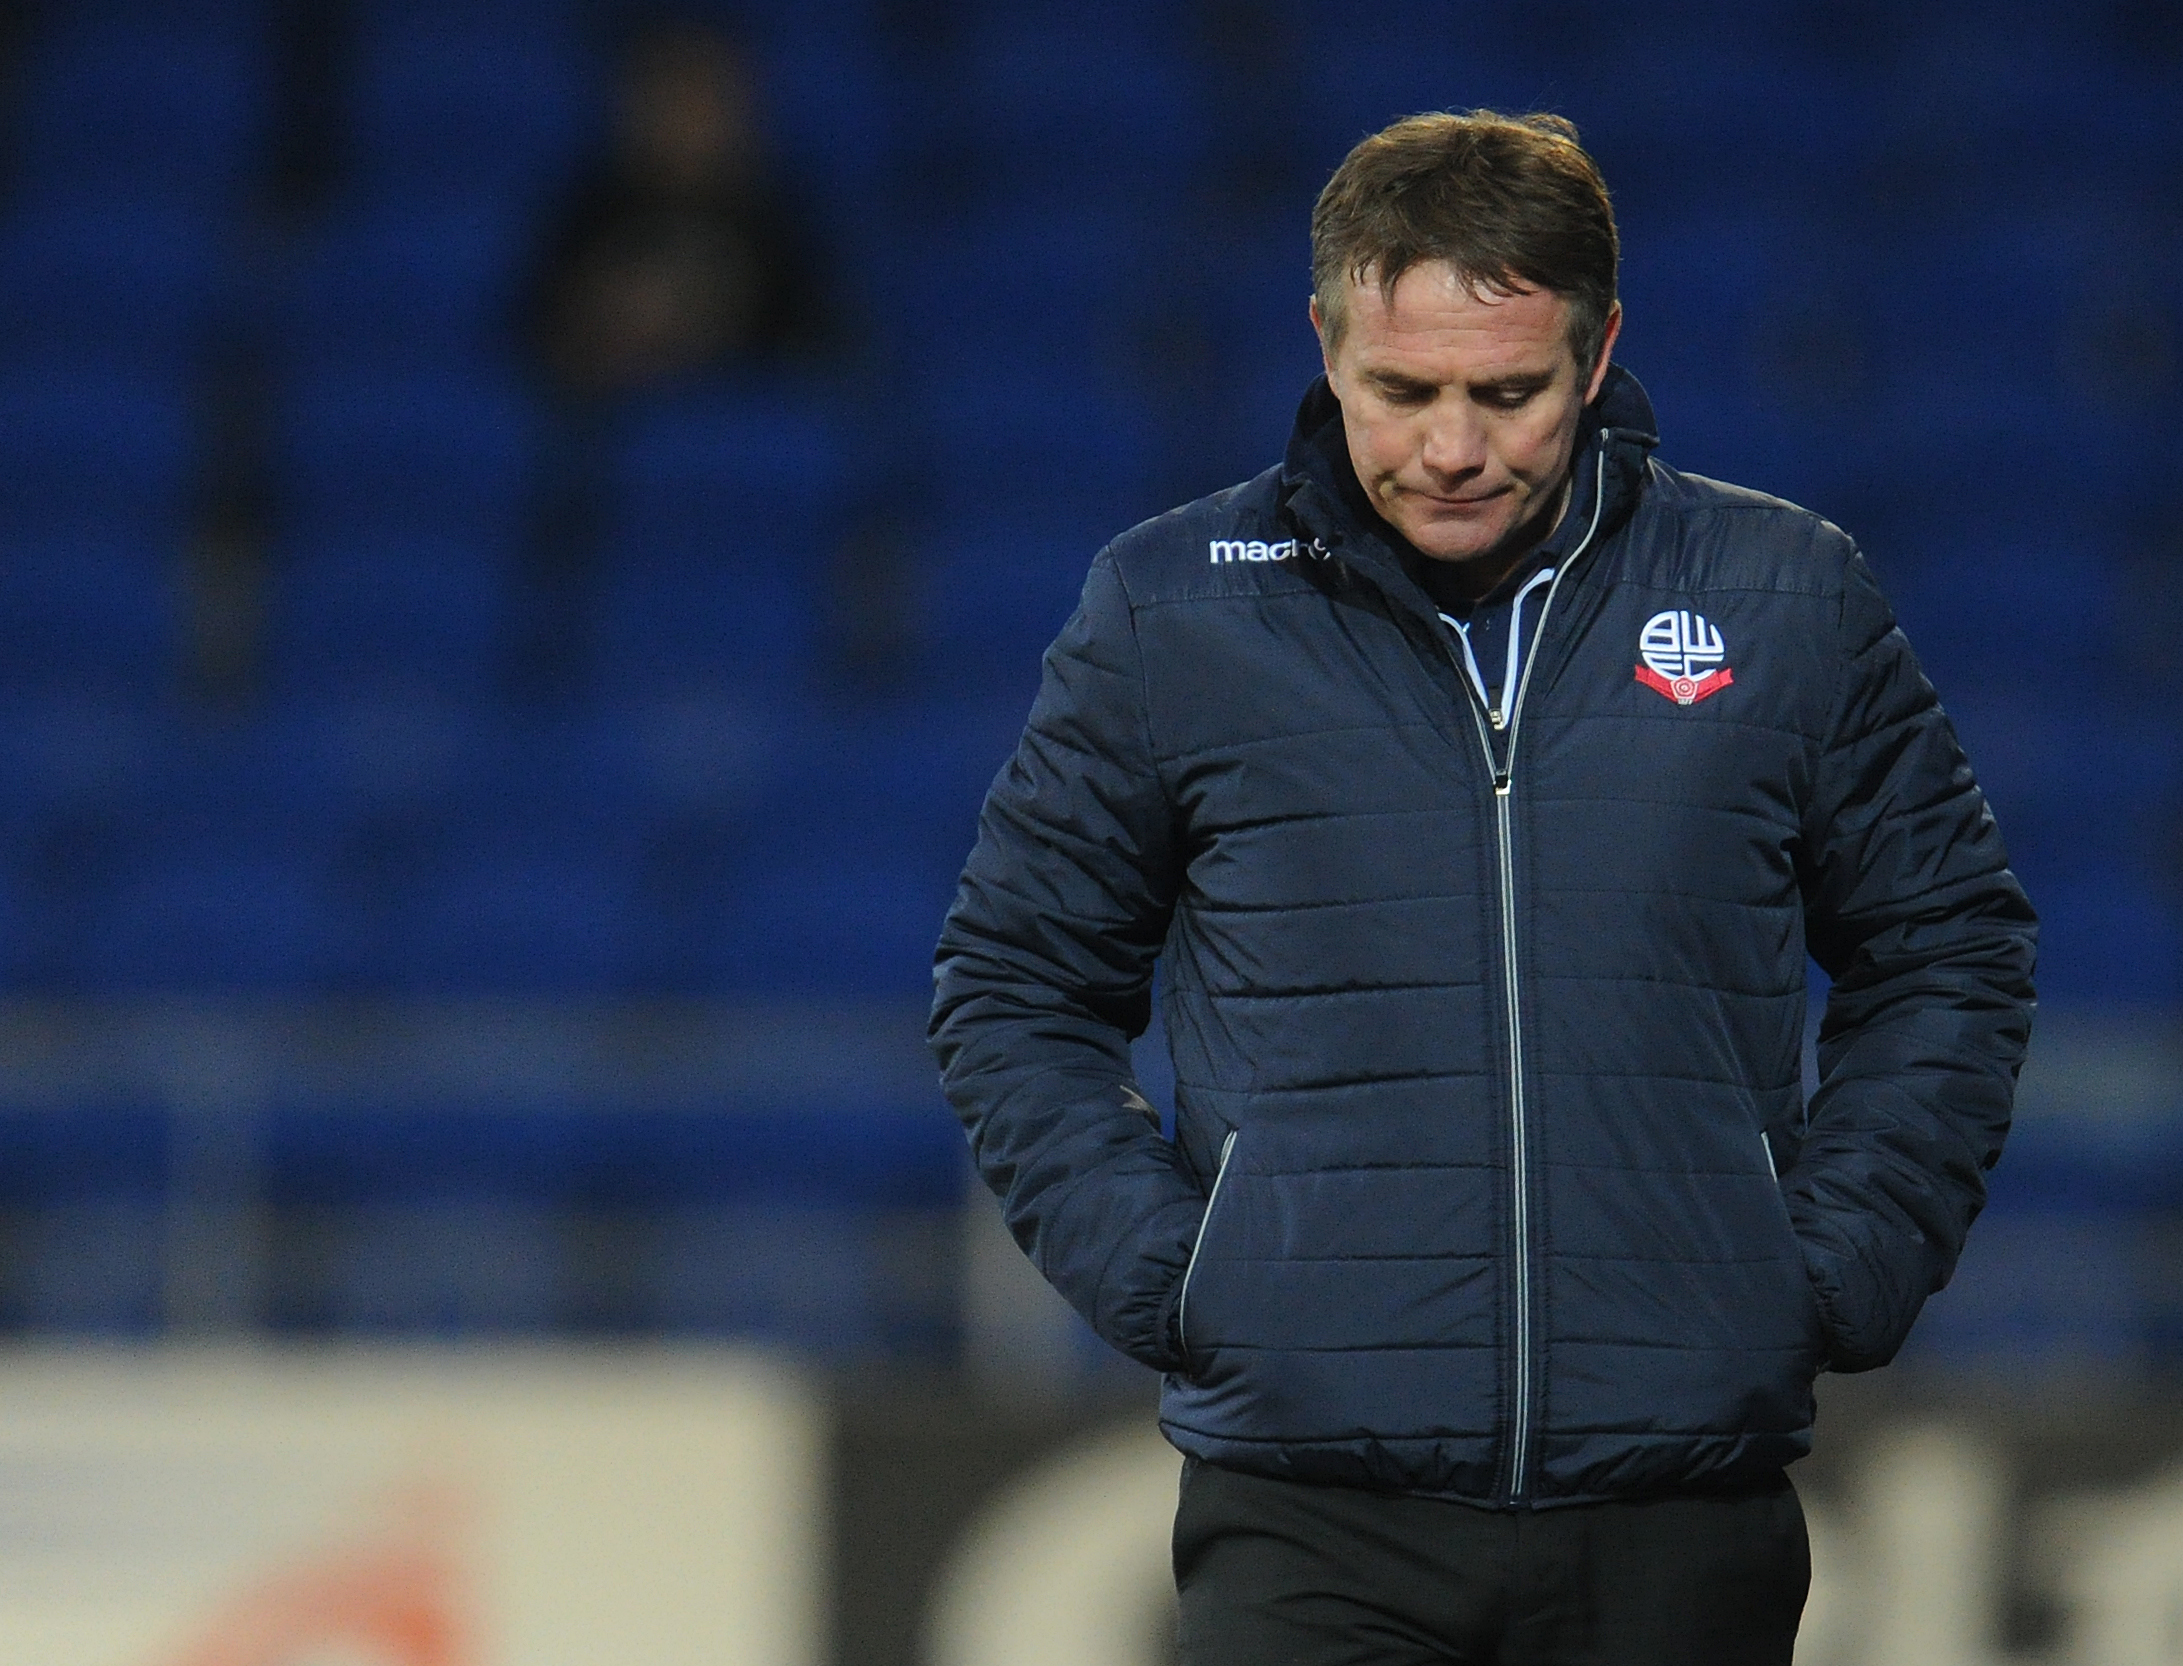 Phil Parkinson looks dejected as Wanderers are beaten 2-0 by Cardiff City